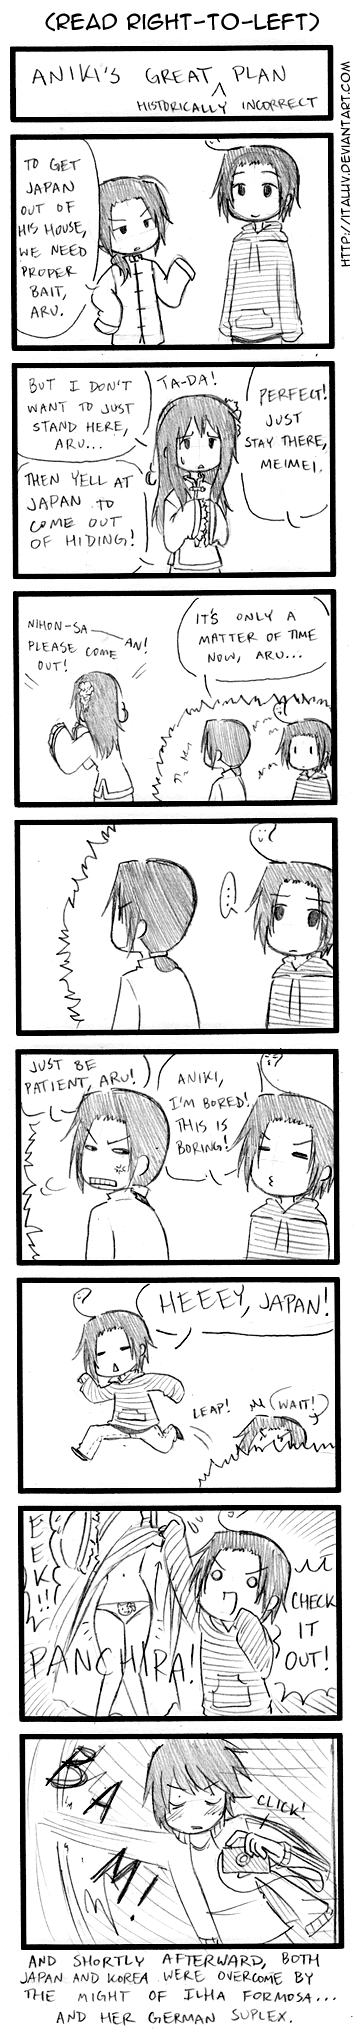 Aniki's Great Plan by ItaLuv